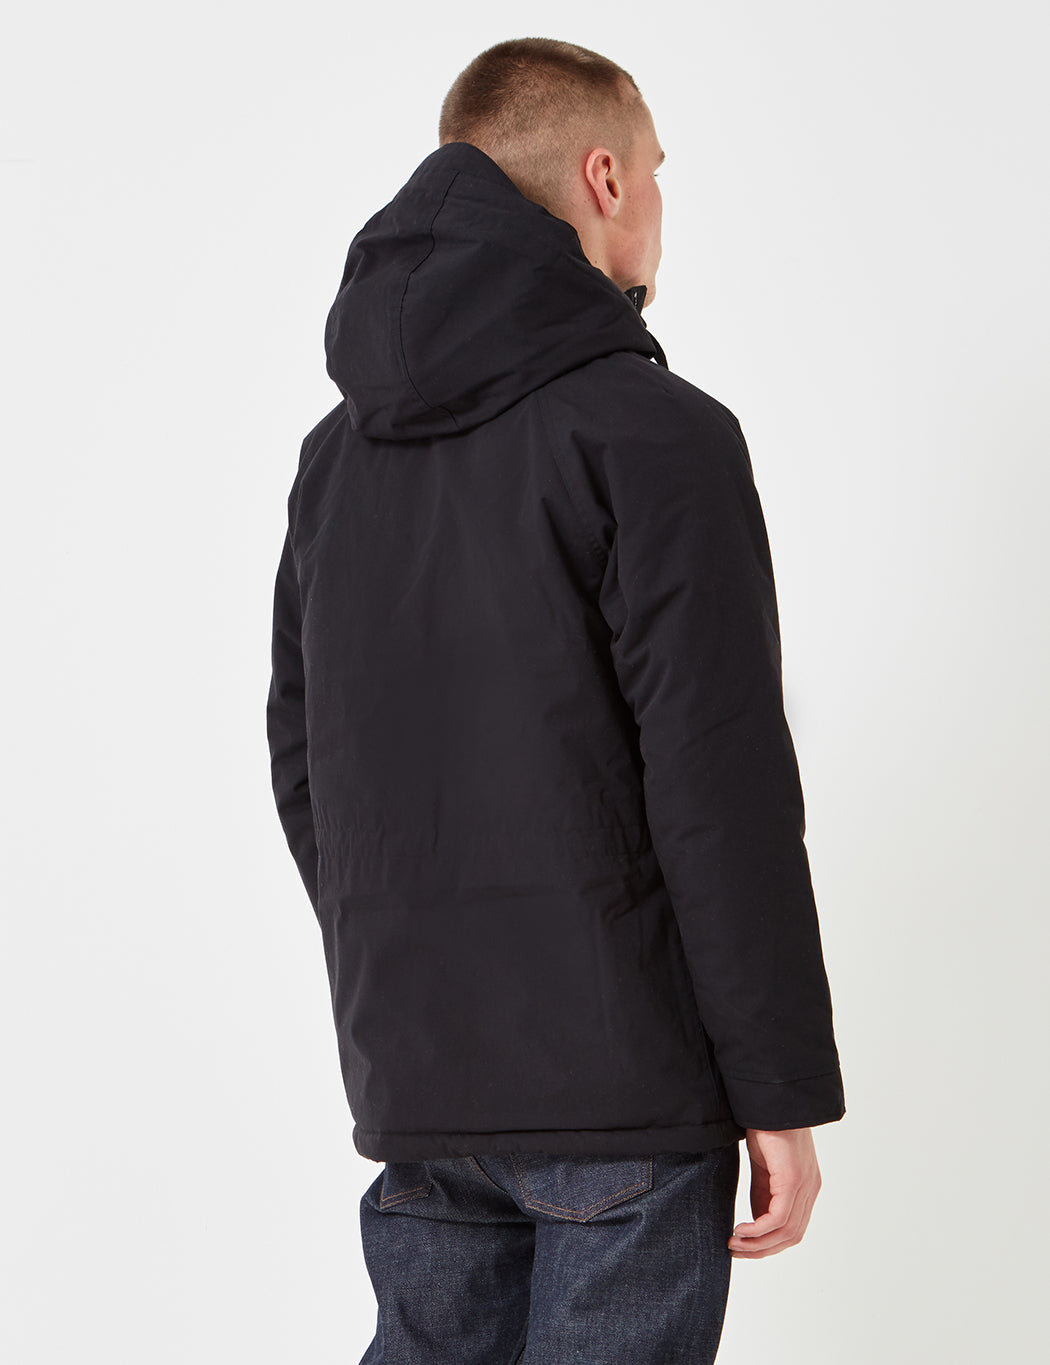 d338719af Carhartt Mentley Jacket - Black